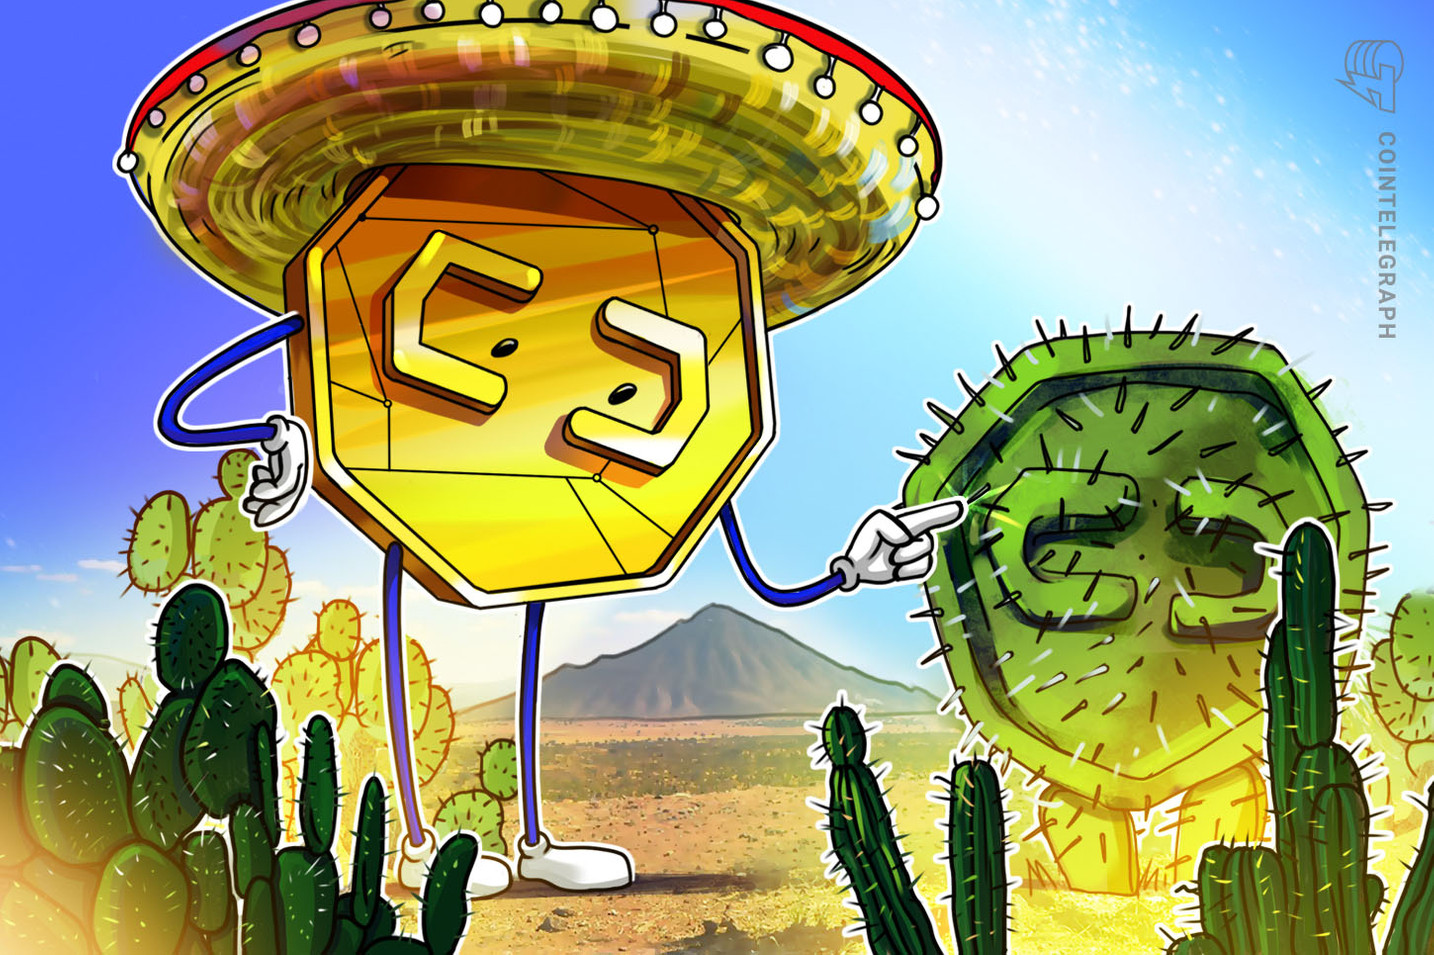 Mexico's second-richest man invests 10% of his liquid portfolio in Bitcoin